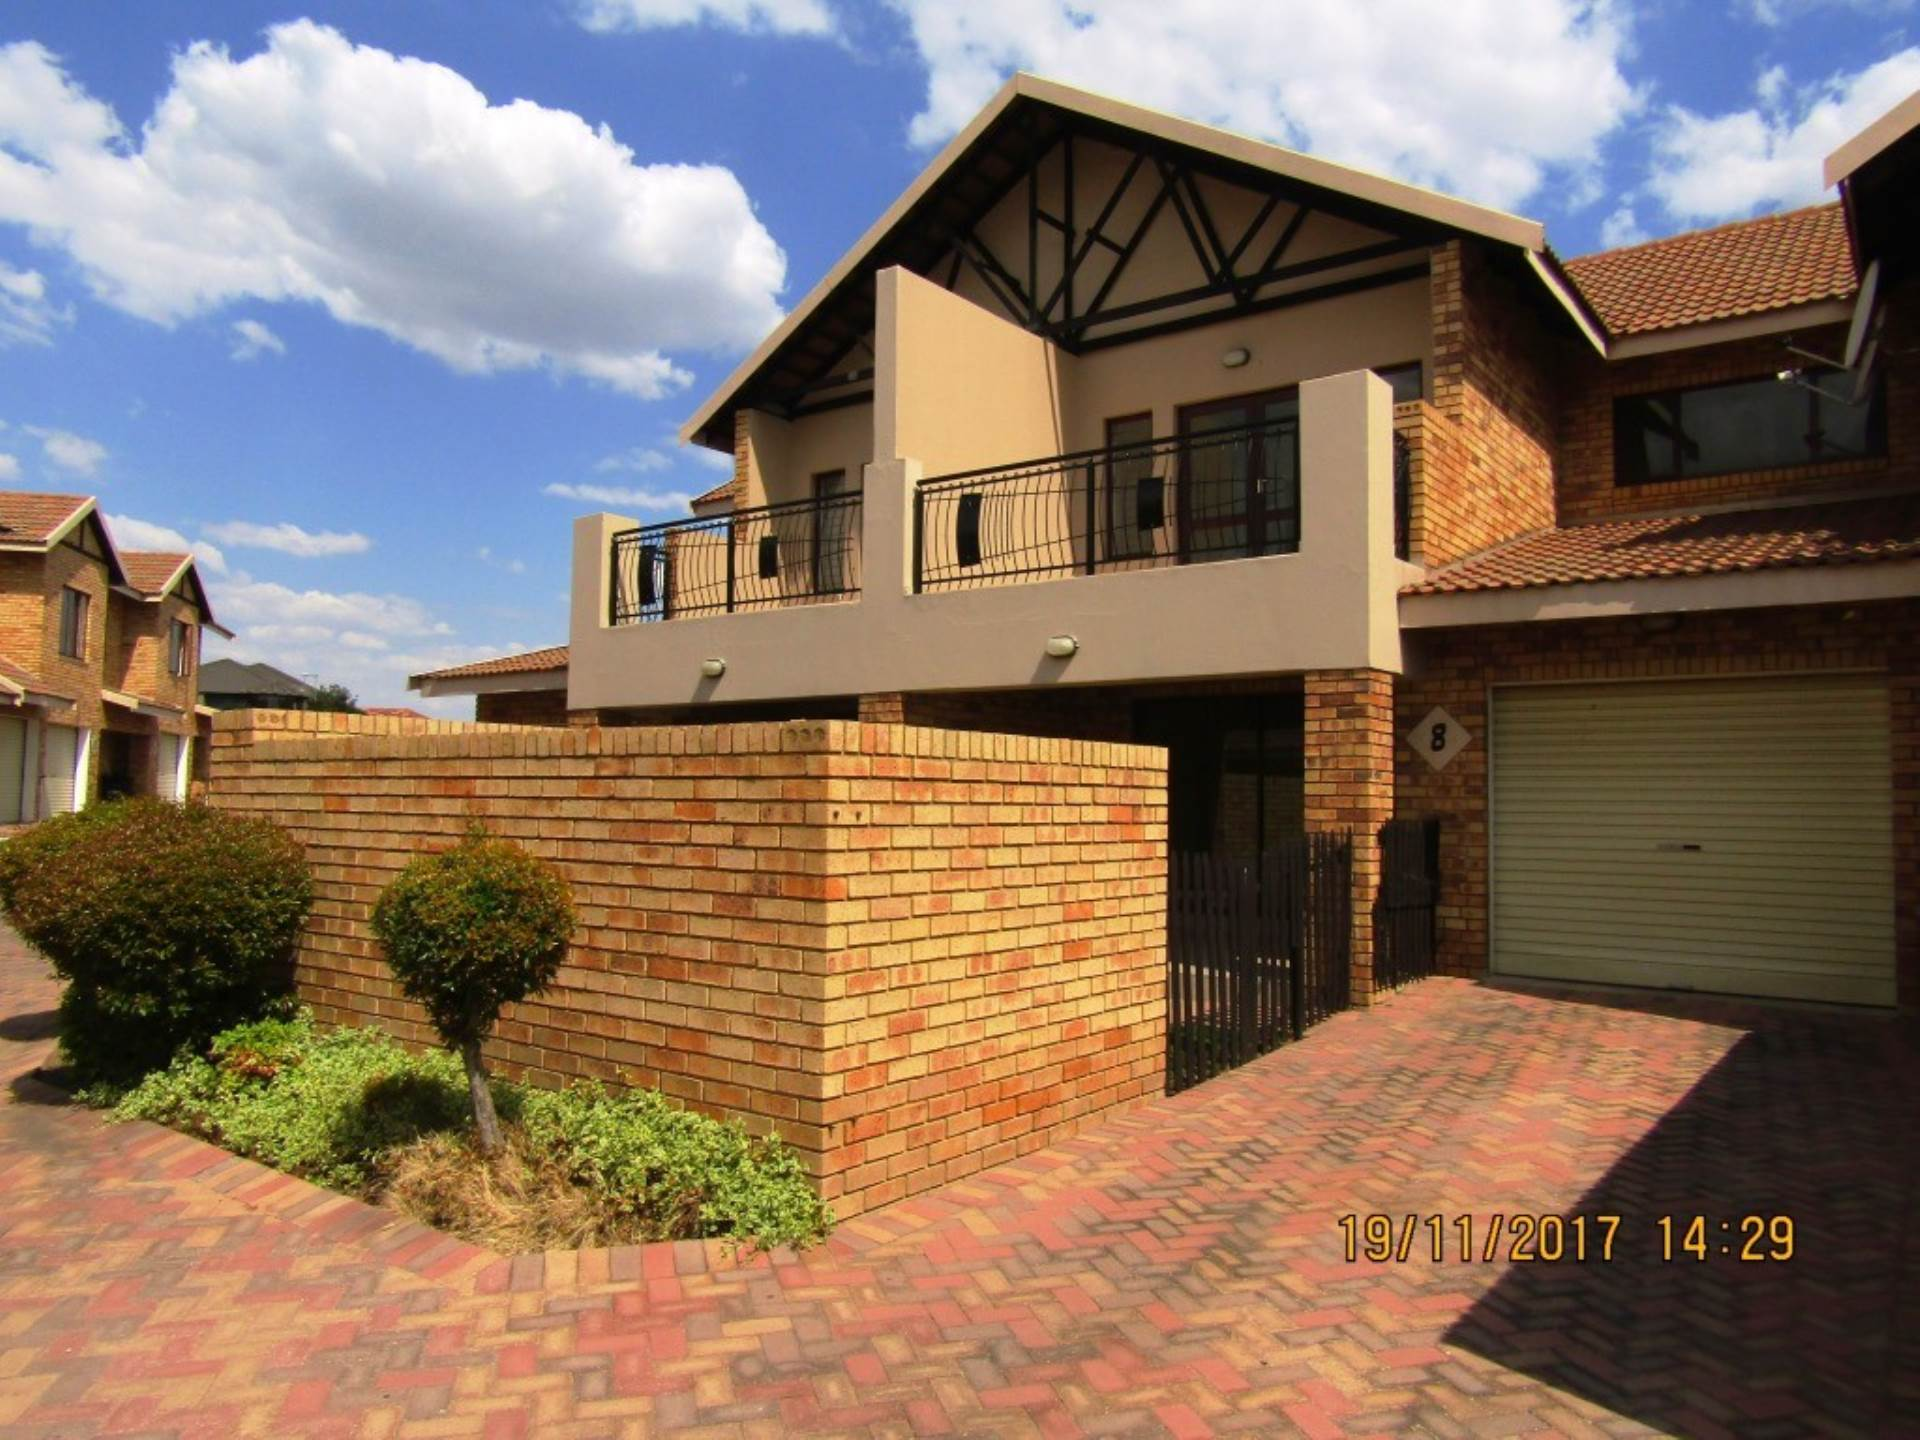 3 BedroomTownhouse For Sale In Sonneveld